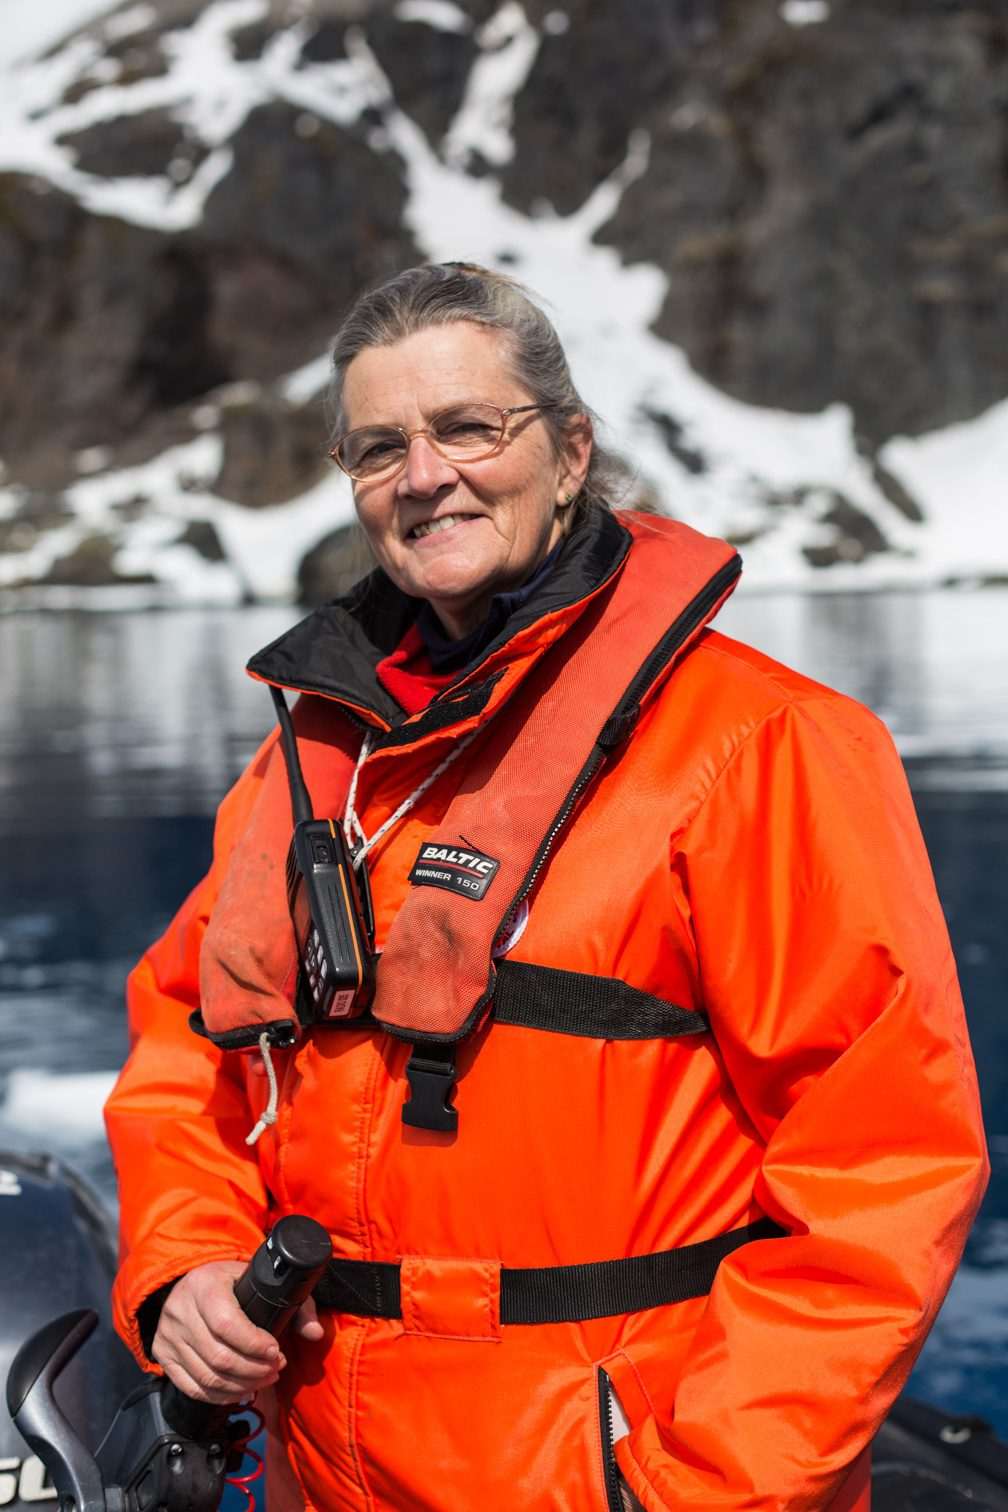 Curious about educational travel opportunities to learn about ocean conservation, including boat cruise expeditions through polar regions? Learn from this interview with Antarctica expert, Susan Adie... and see great polar bear, penguin, and iceberg photos, too!